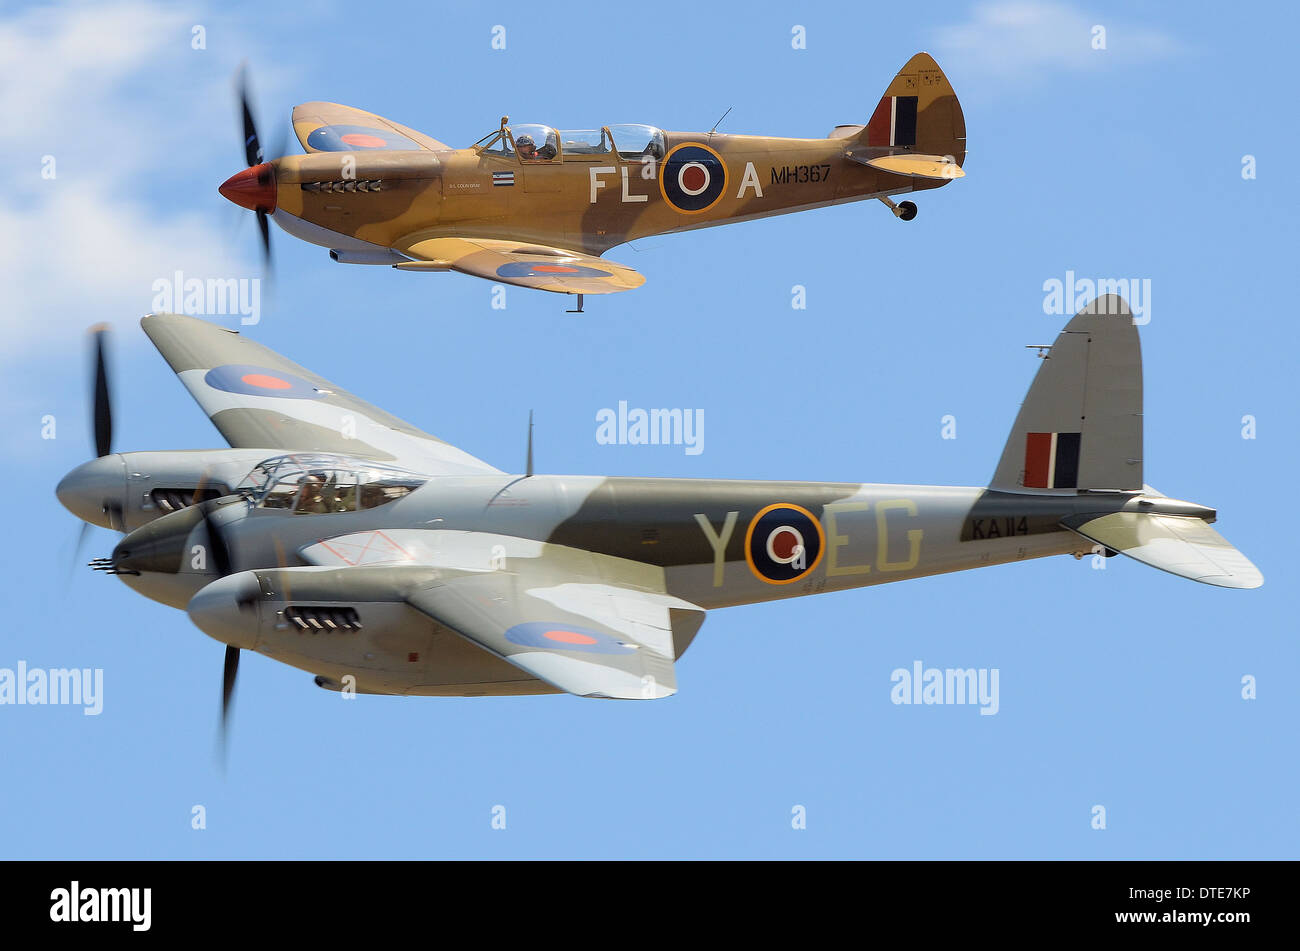 A pairing of a Spitfire and Mosquito in formation. The 'Mossie' illustrated is currently the only one flying in Stock Photo